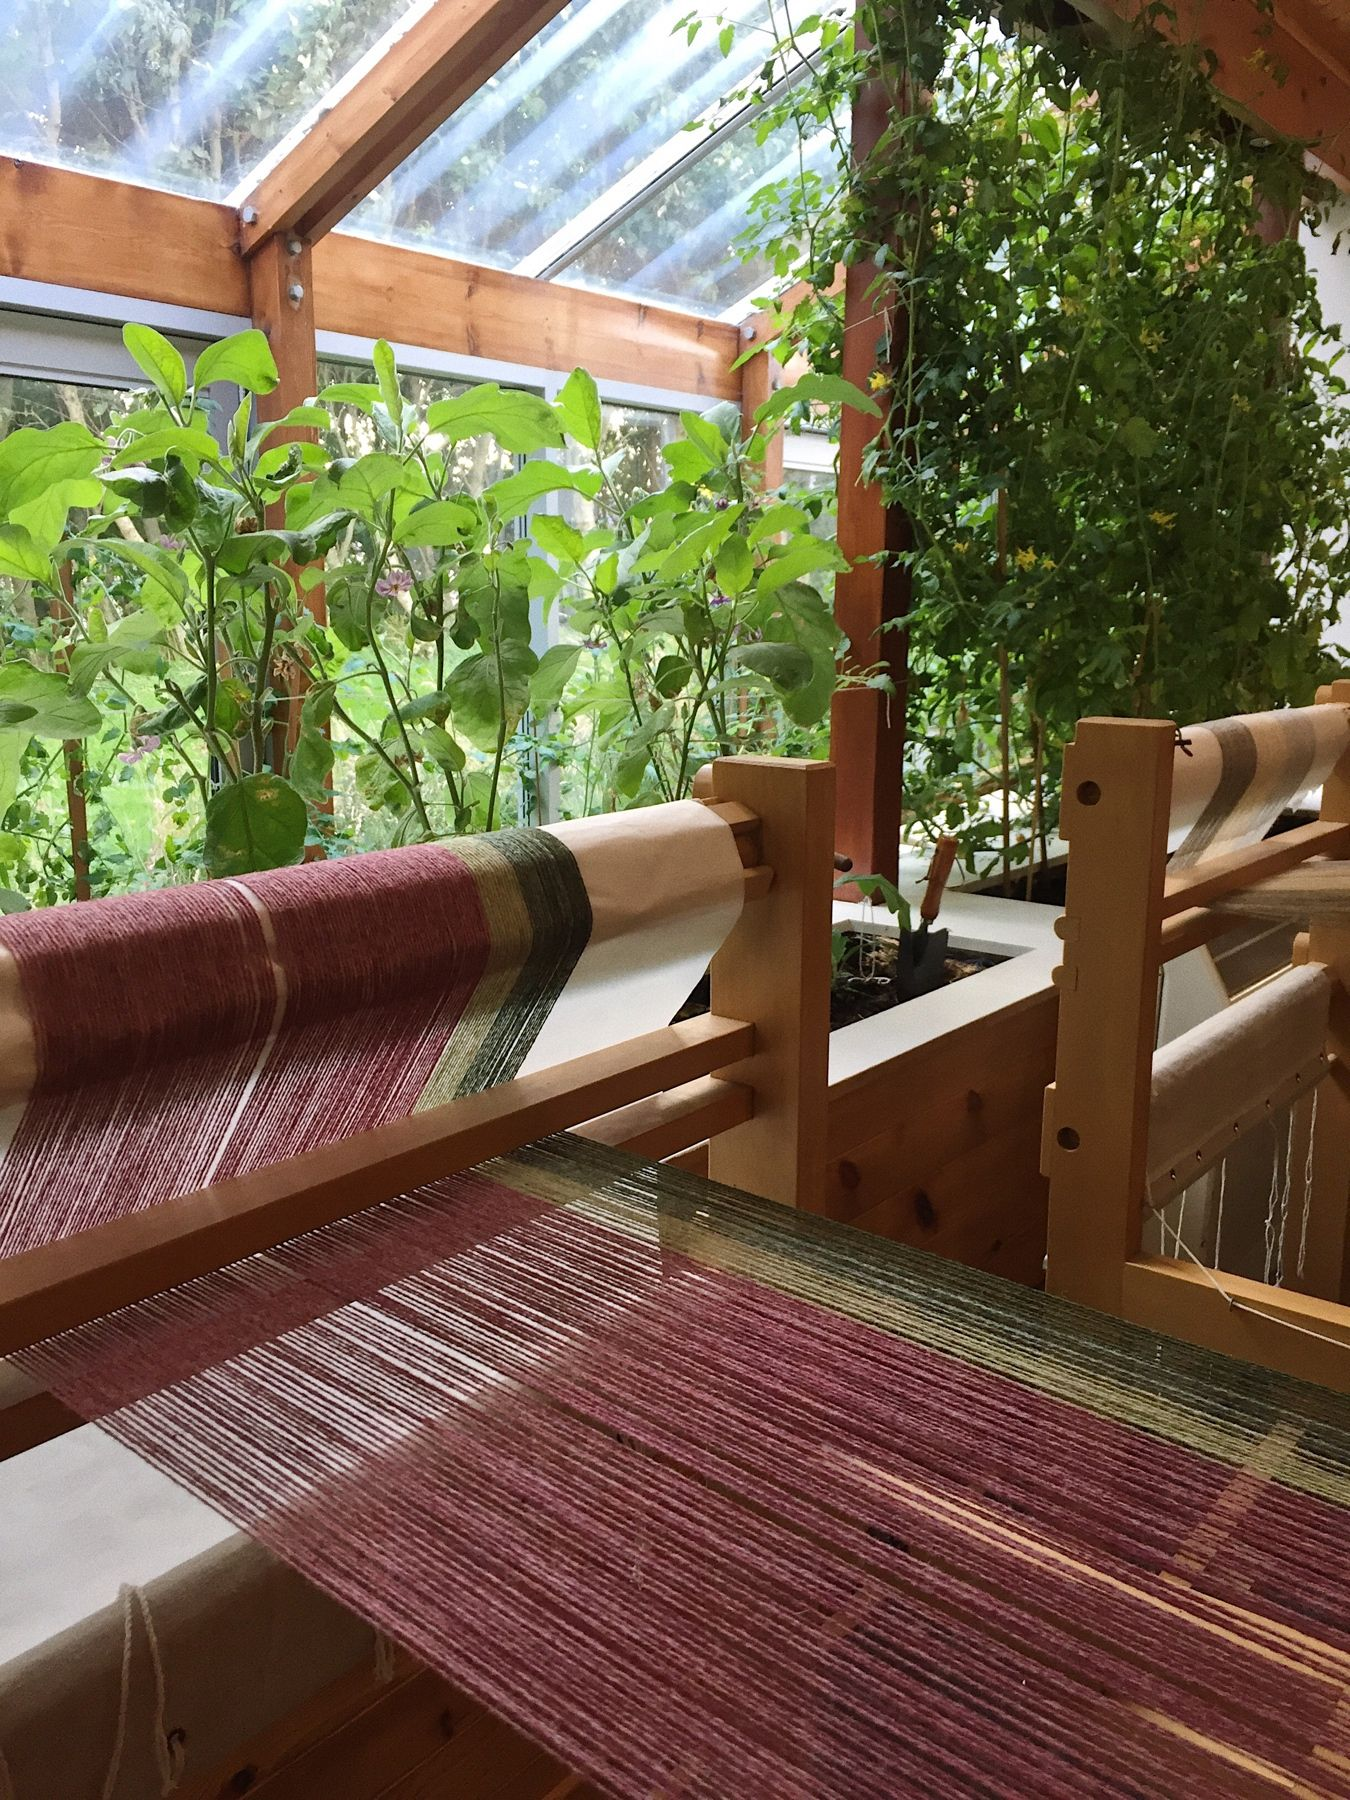 Taken in the height of summer, we love looking back on all of our lovely greenery. Especially in contrast with this lovely shade of pink! 🌸 #orkney #visitorkney #loomweaving #weaversofinstagram #loom #weaving #design #striped #stripes #wool #shetlandwool #handmade #workshop #learning #course